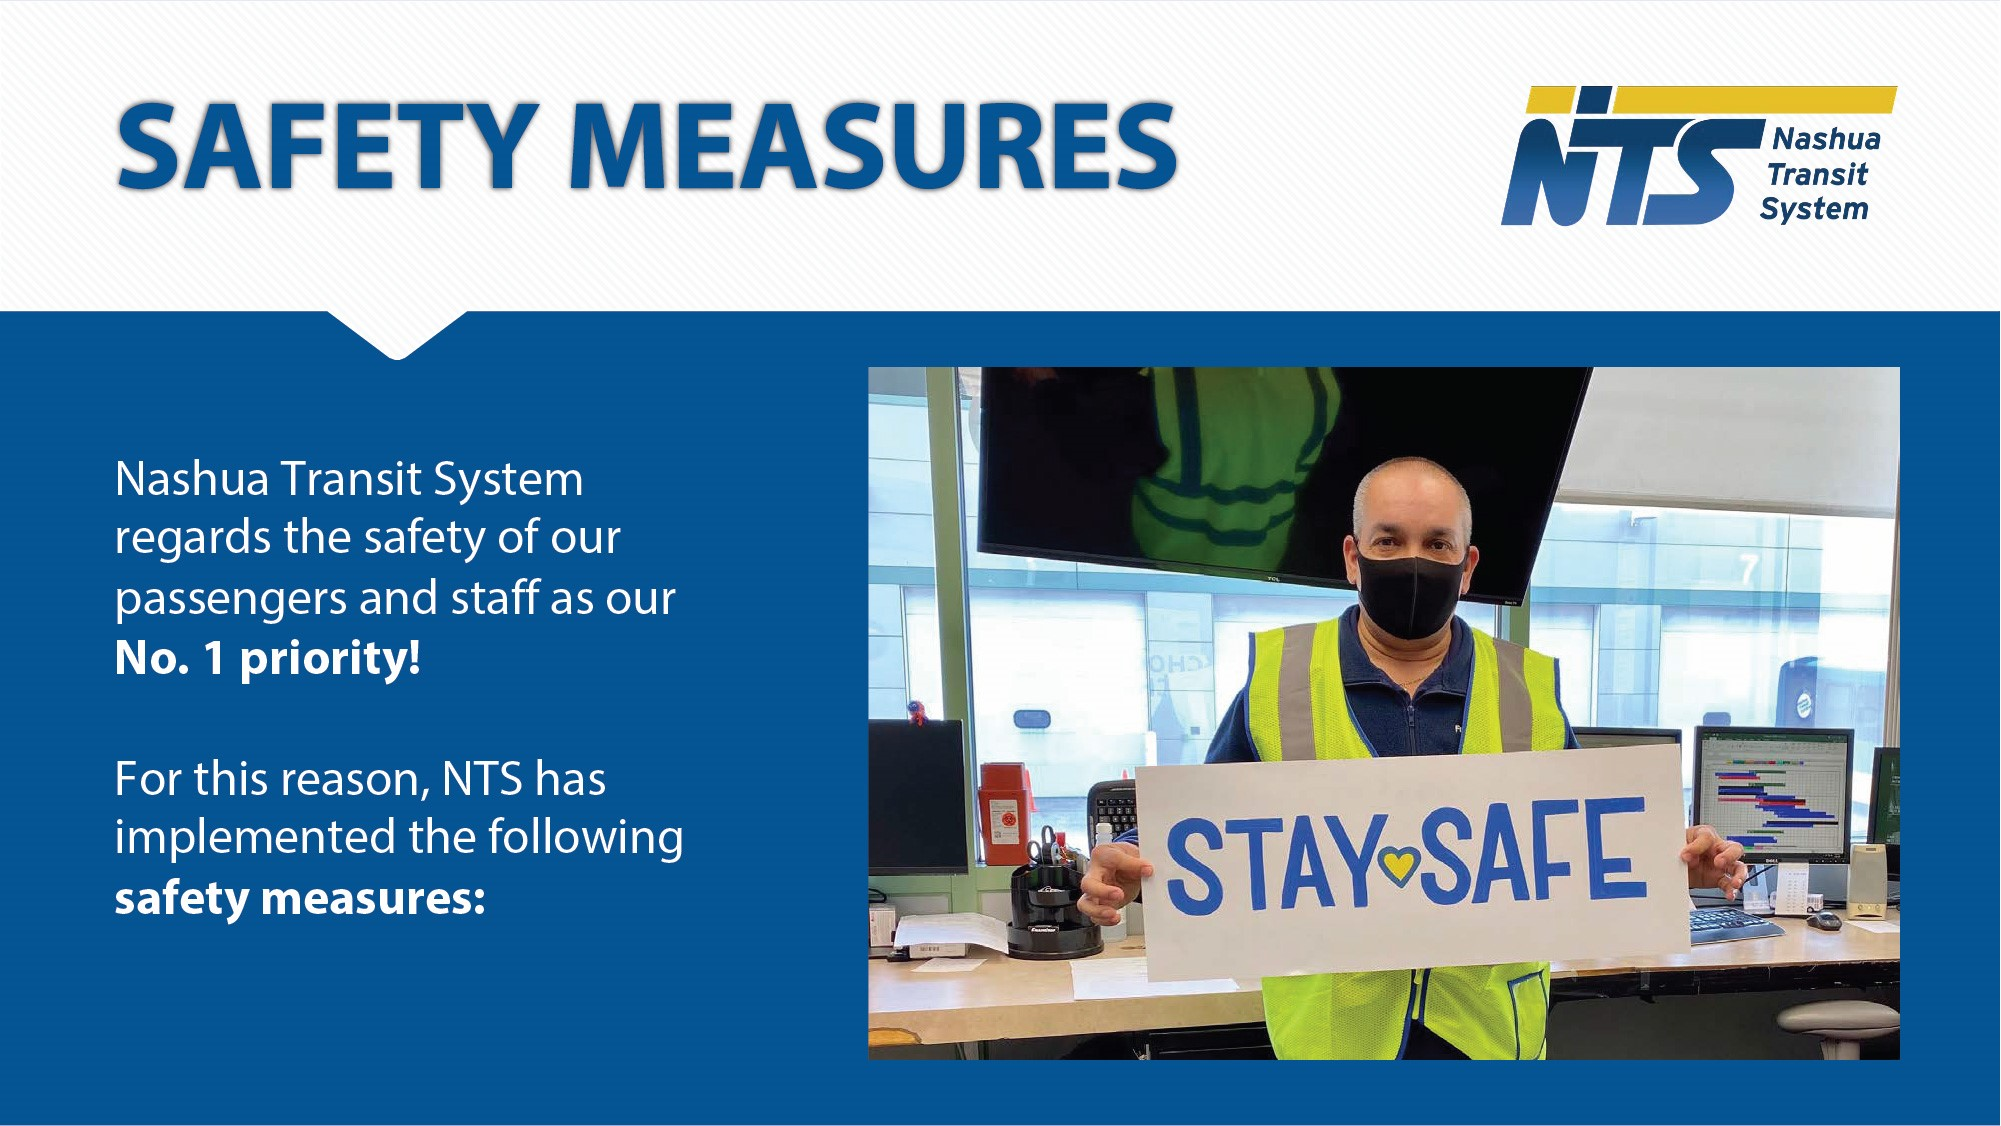 Safety Measures: Safety is NTS's #1 priority